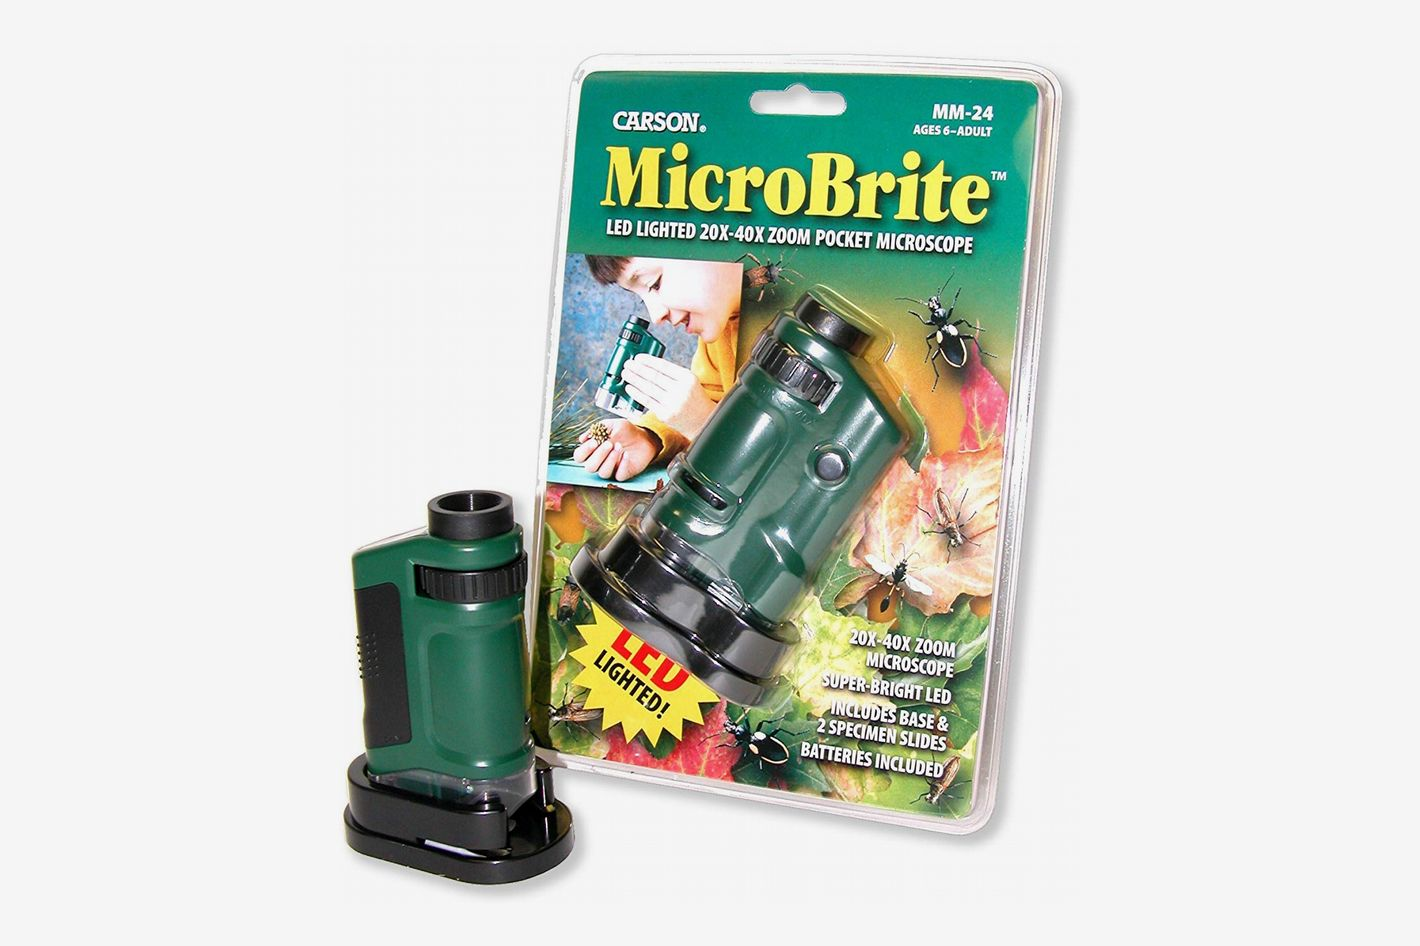 Carson MicroBrite 20x-40x LED Lighted Pocket Microscope